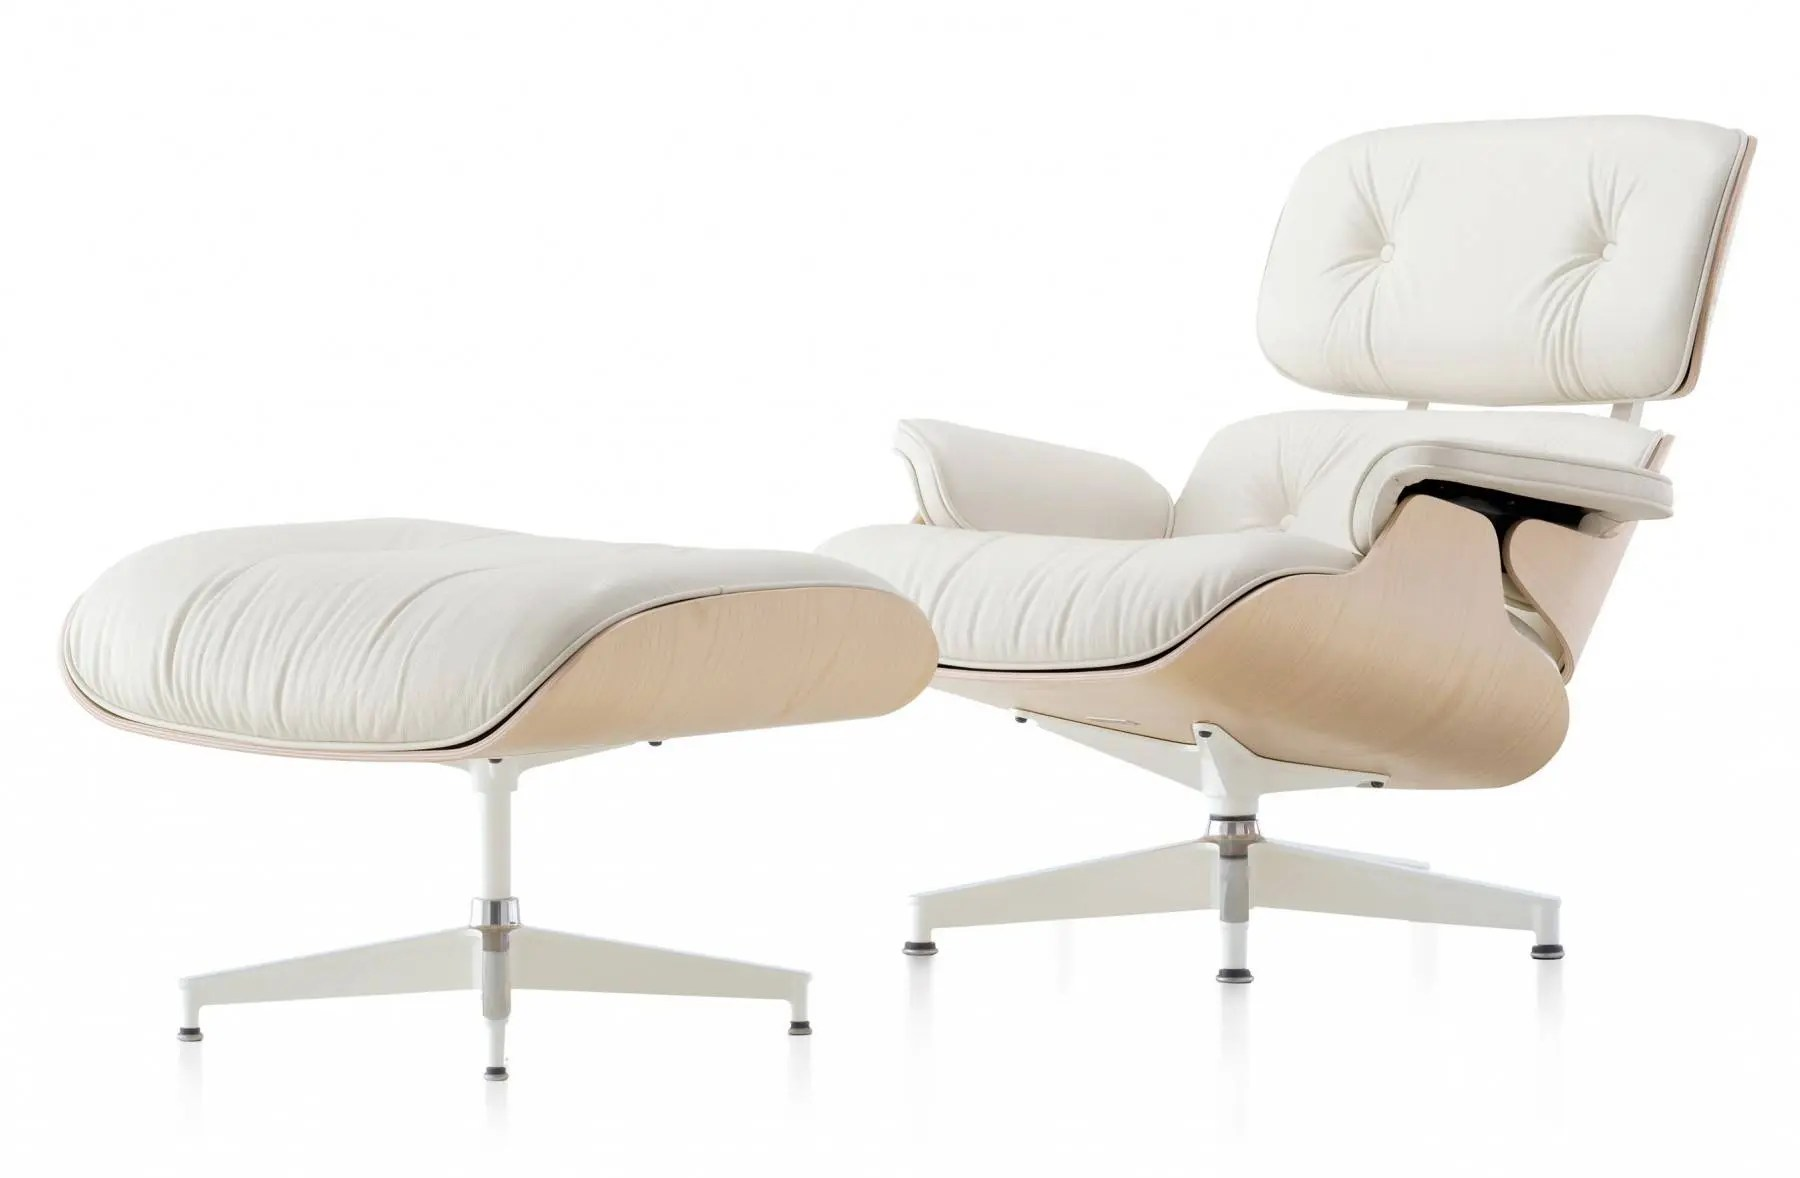 eames chair canada modern brown leather recliner 2 herman miller lounge and ottoman white ash